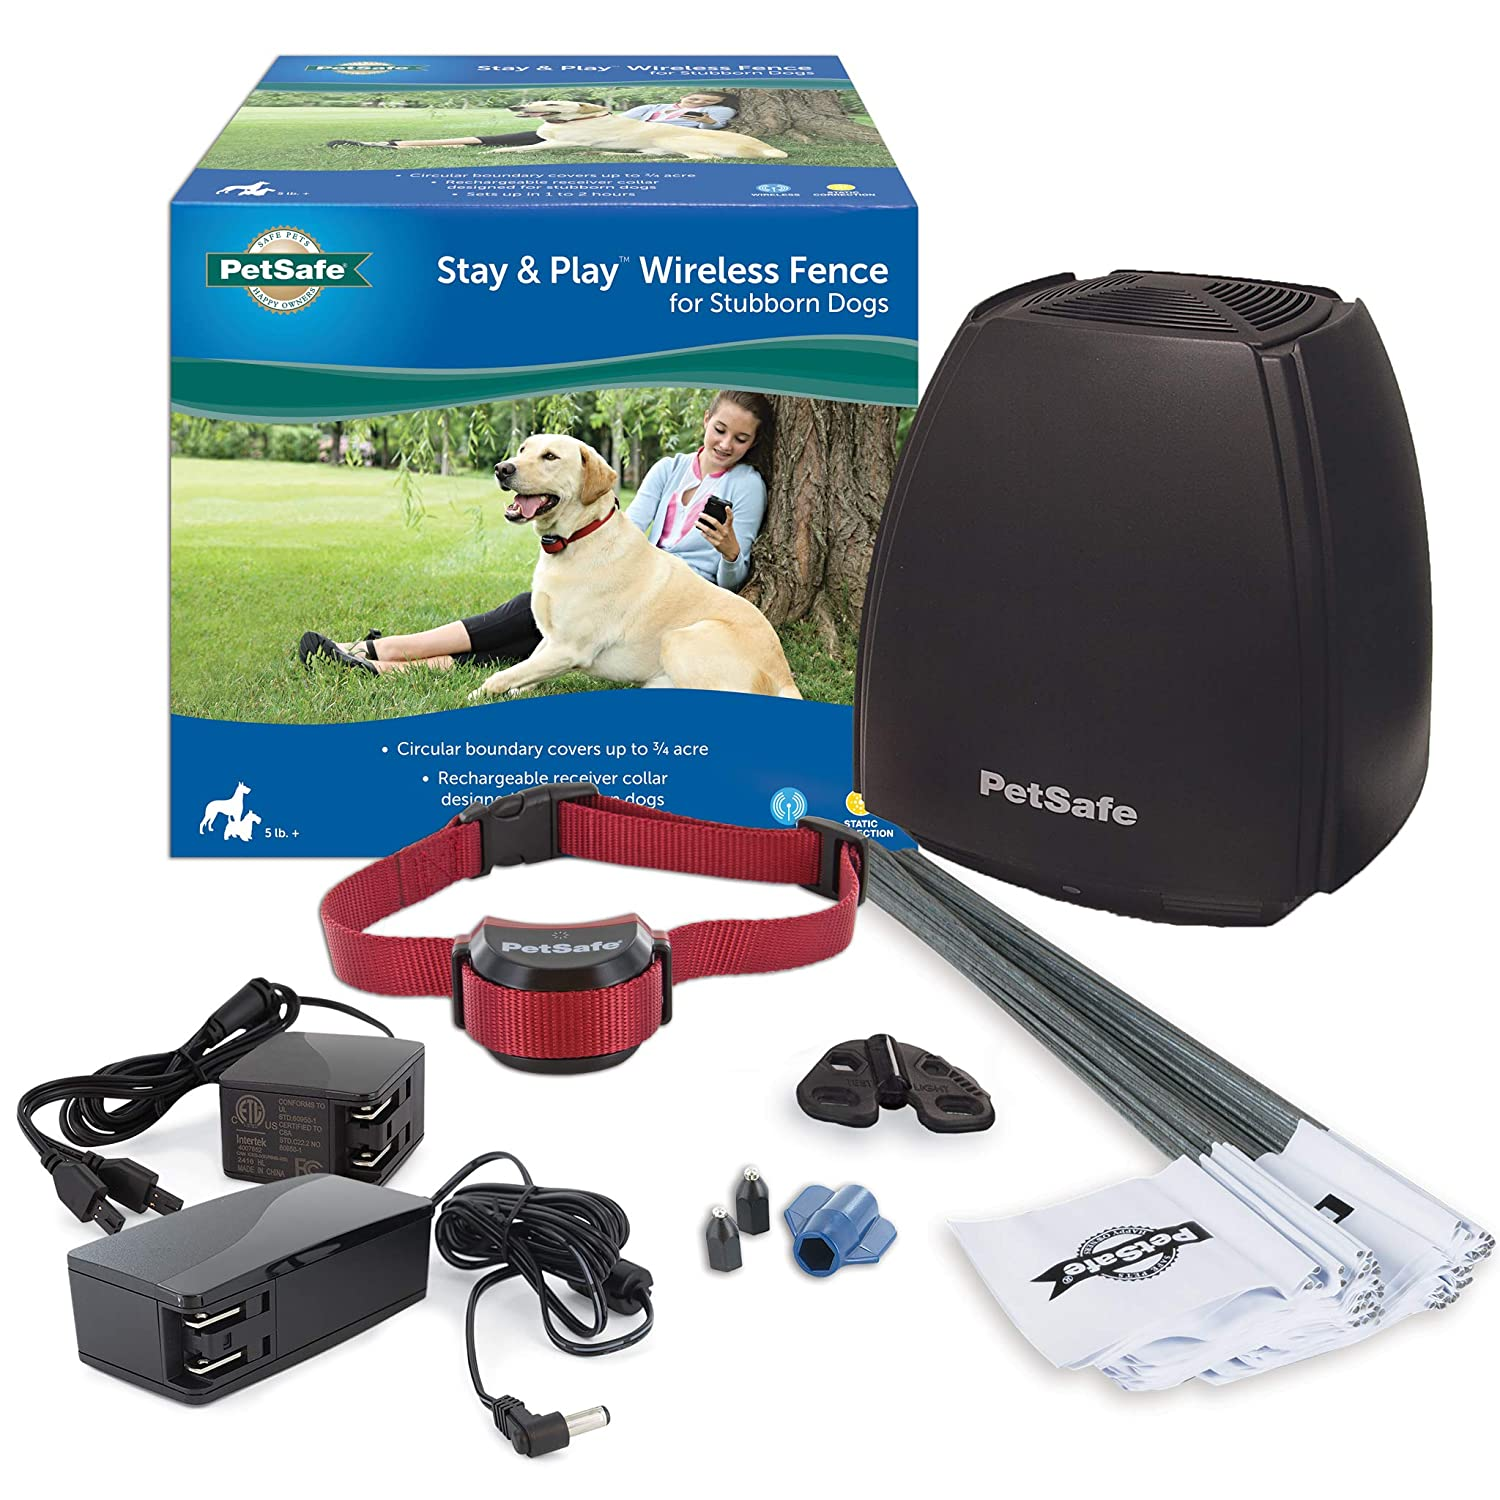 Petsafe stay & Play Wireless Fence For Stubborn Dogs – Above Ground Electric Pet Fence